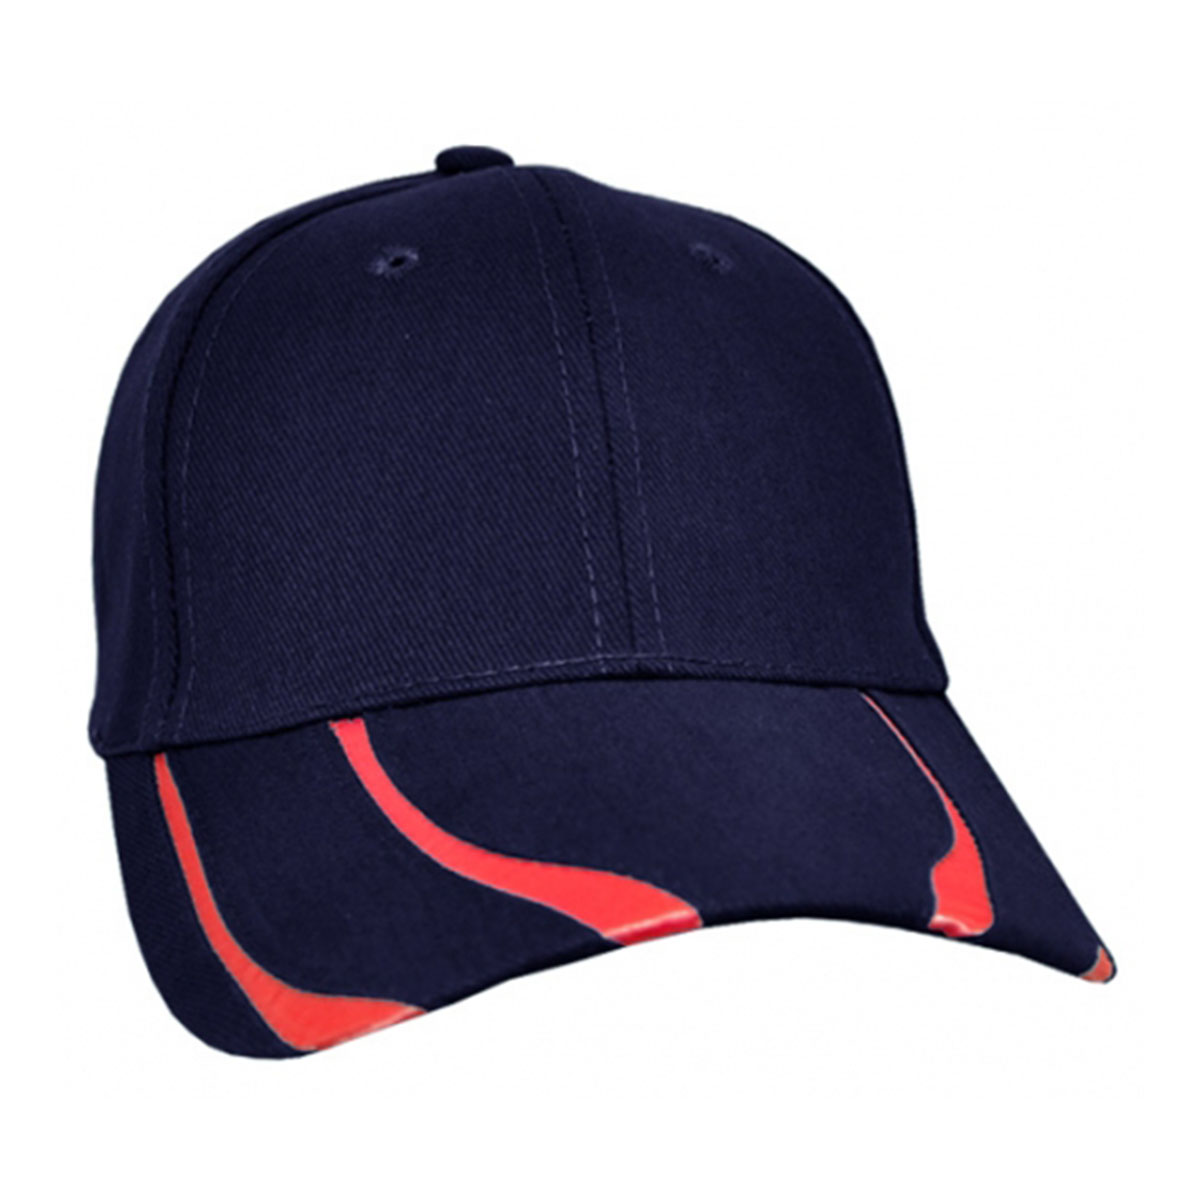 Striker Cap-Navy / Red